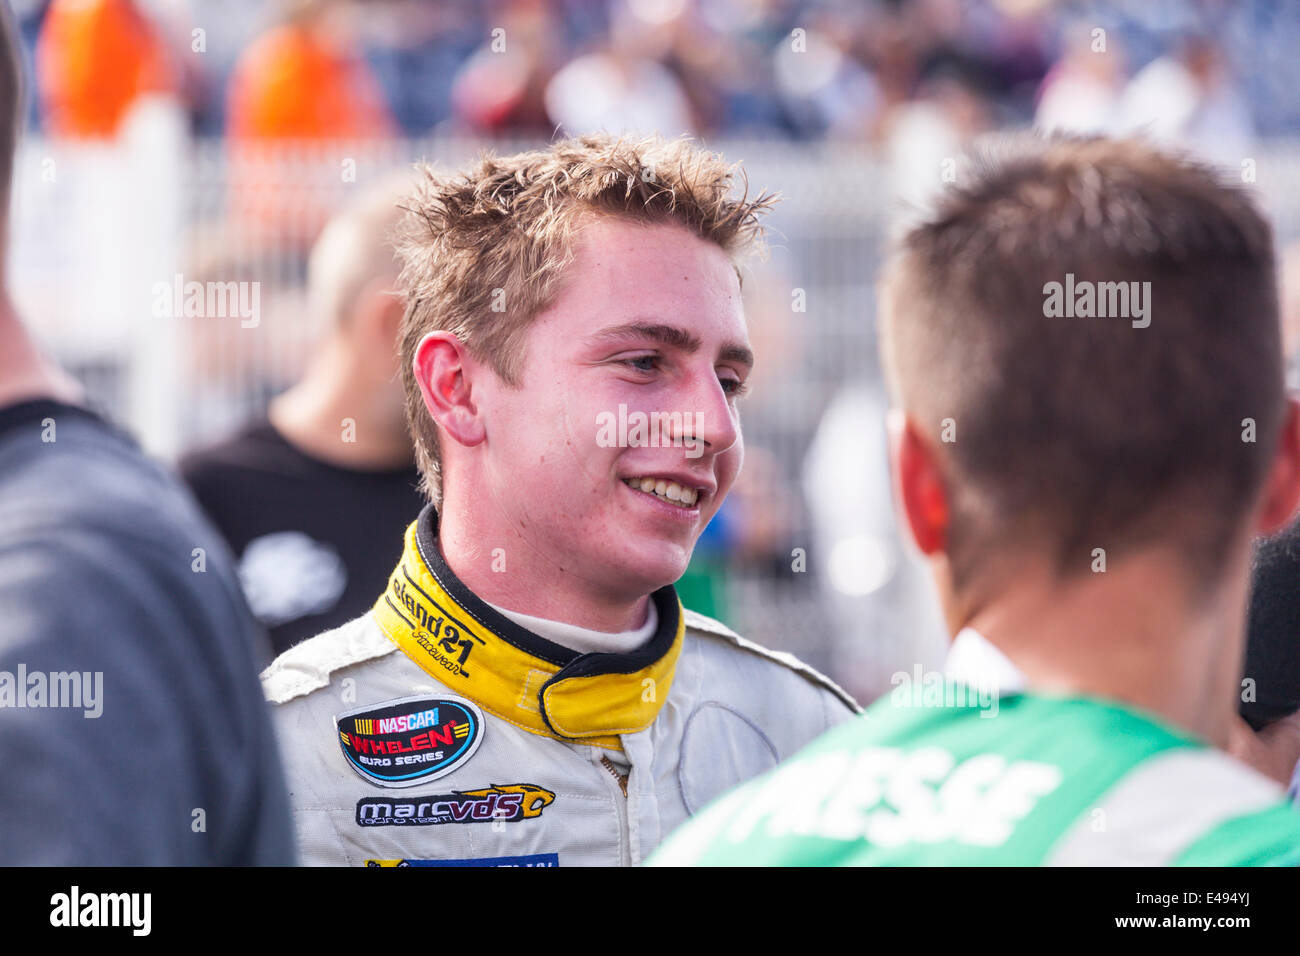 Tours, France. 06th July, 2014. Denis Dupont after winning the Nascar Whelen Euro Series Tours Speedway, Tours, - Stock Image